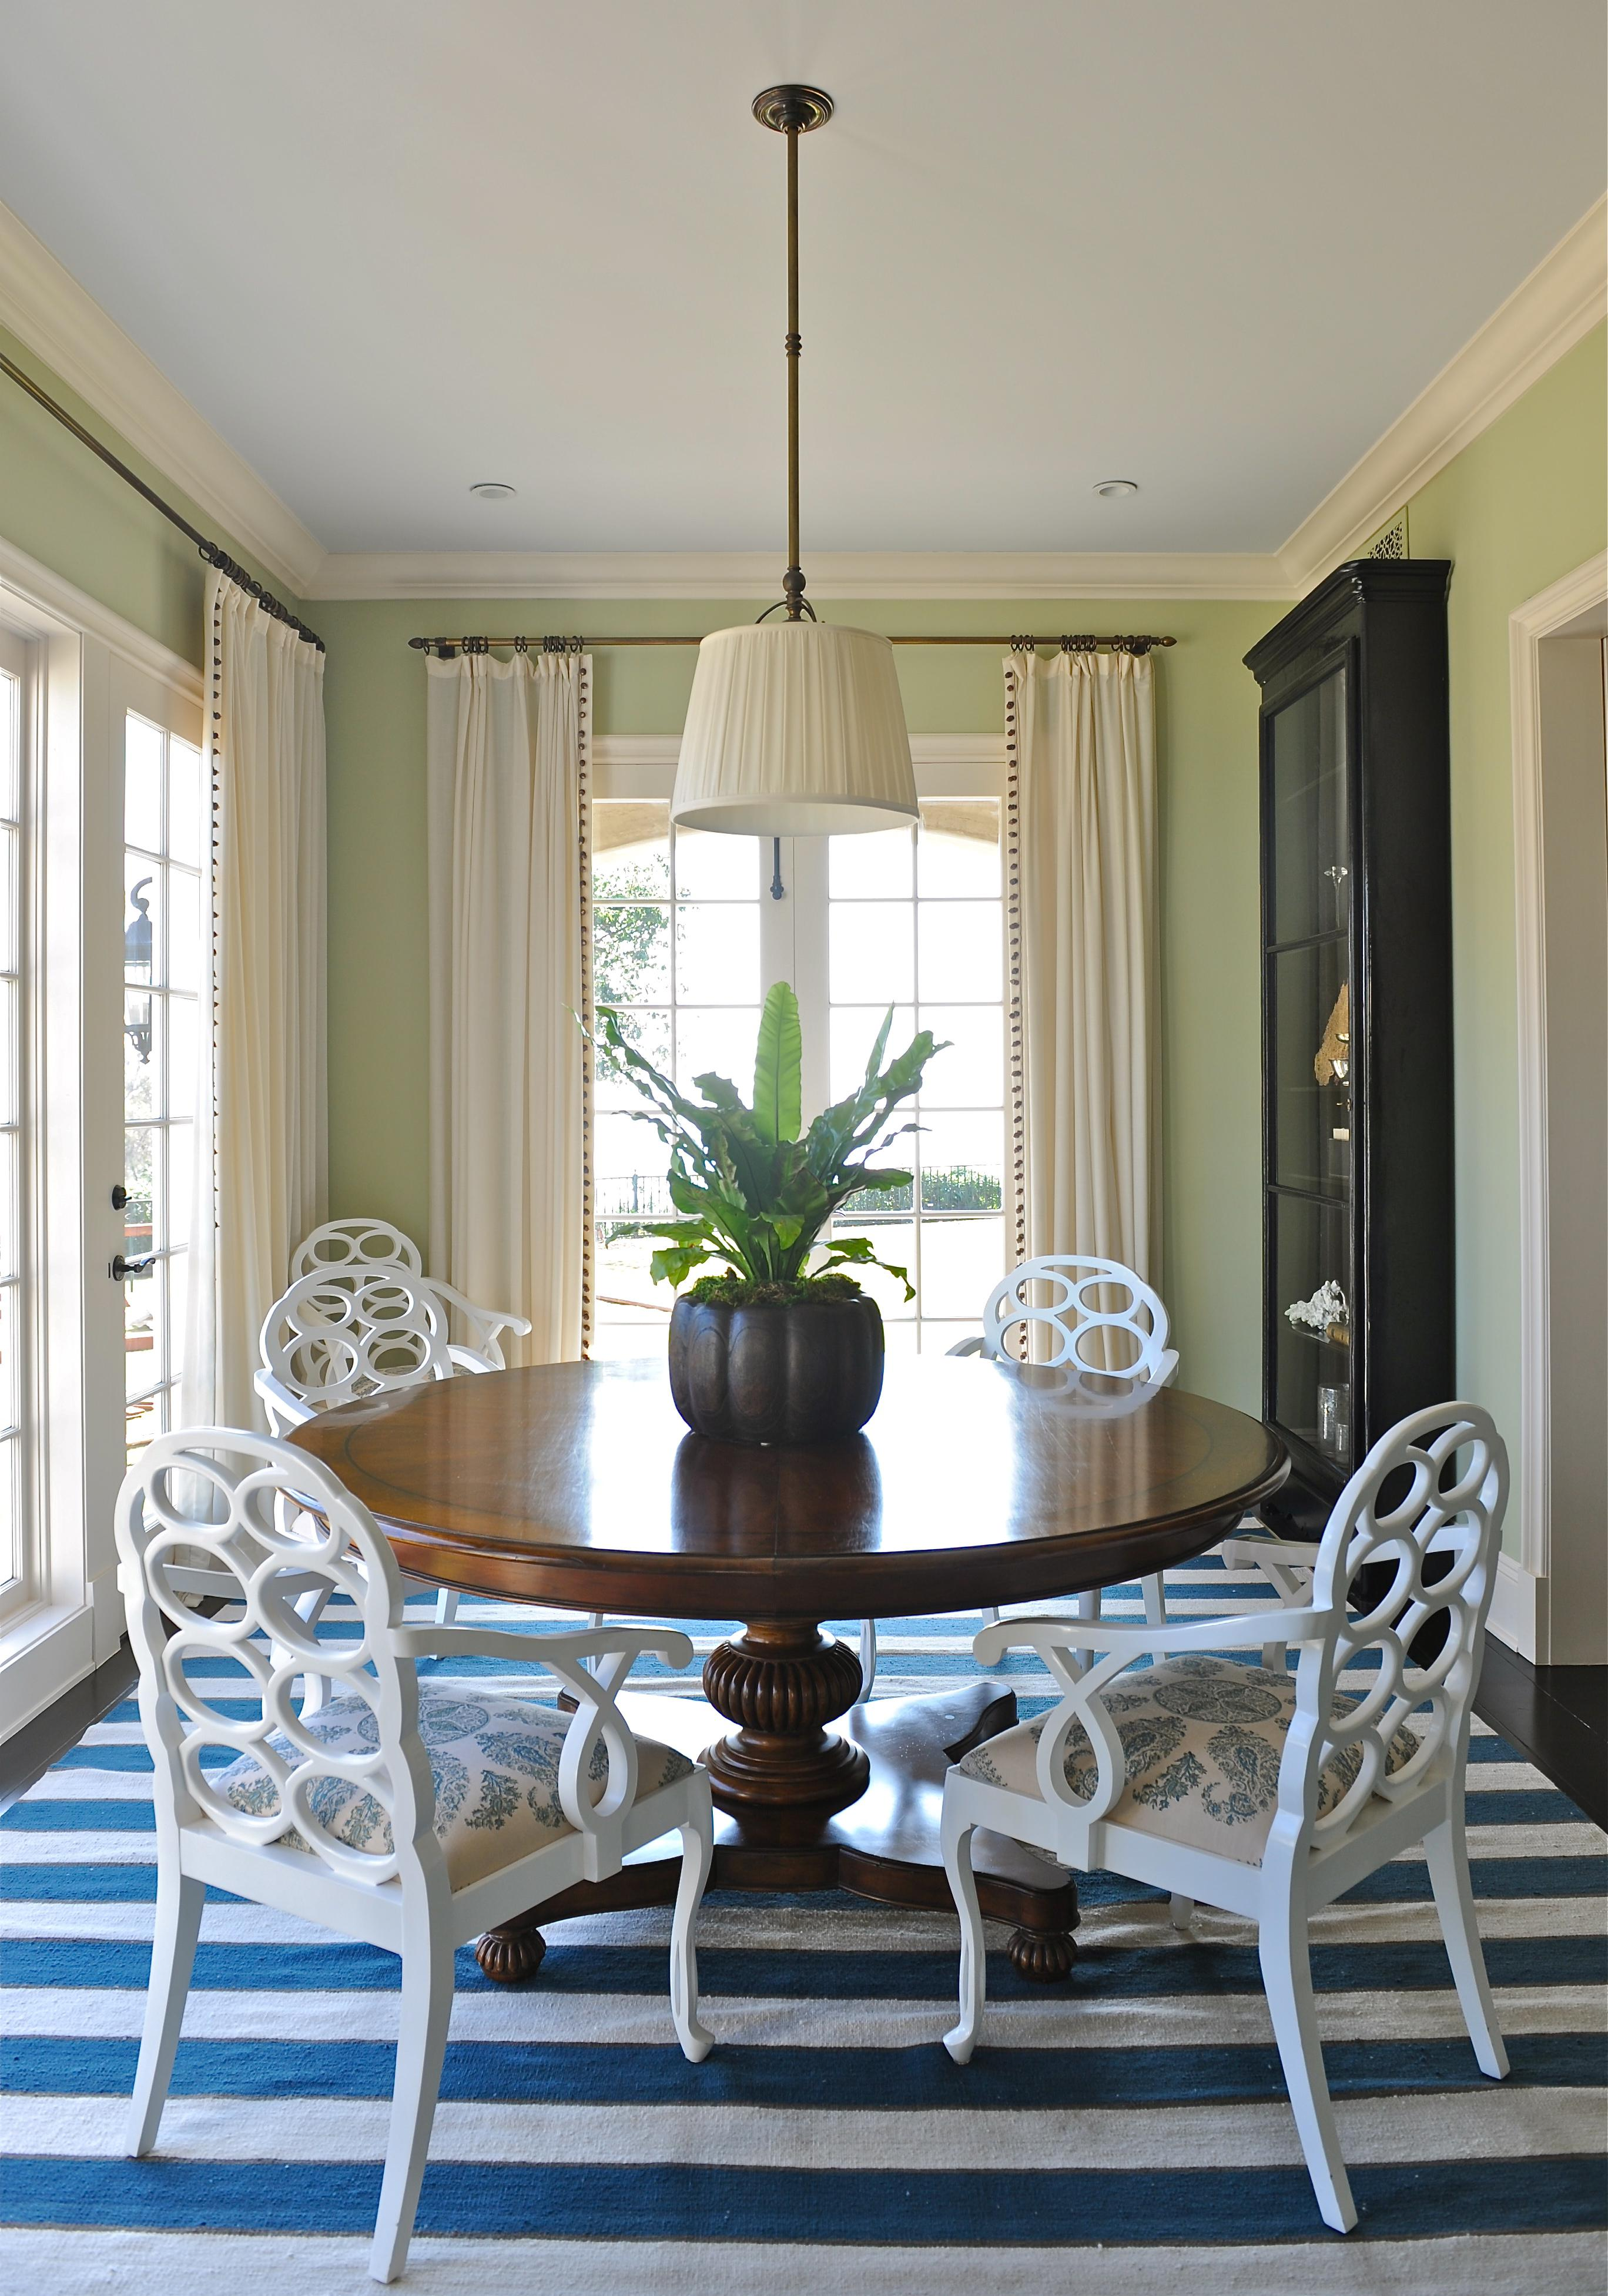 World Travellers Abode Breakfast Room Eclectic Coastal Transitional By  Katie Leede U0026 Company